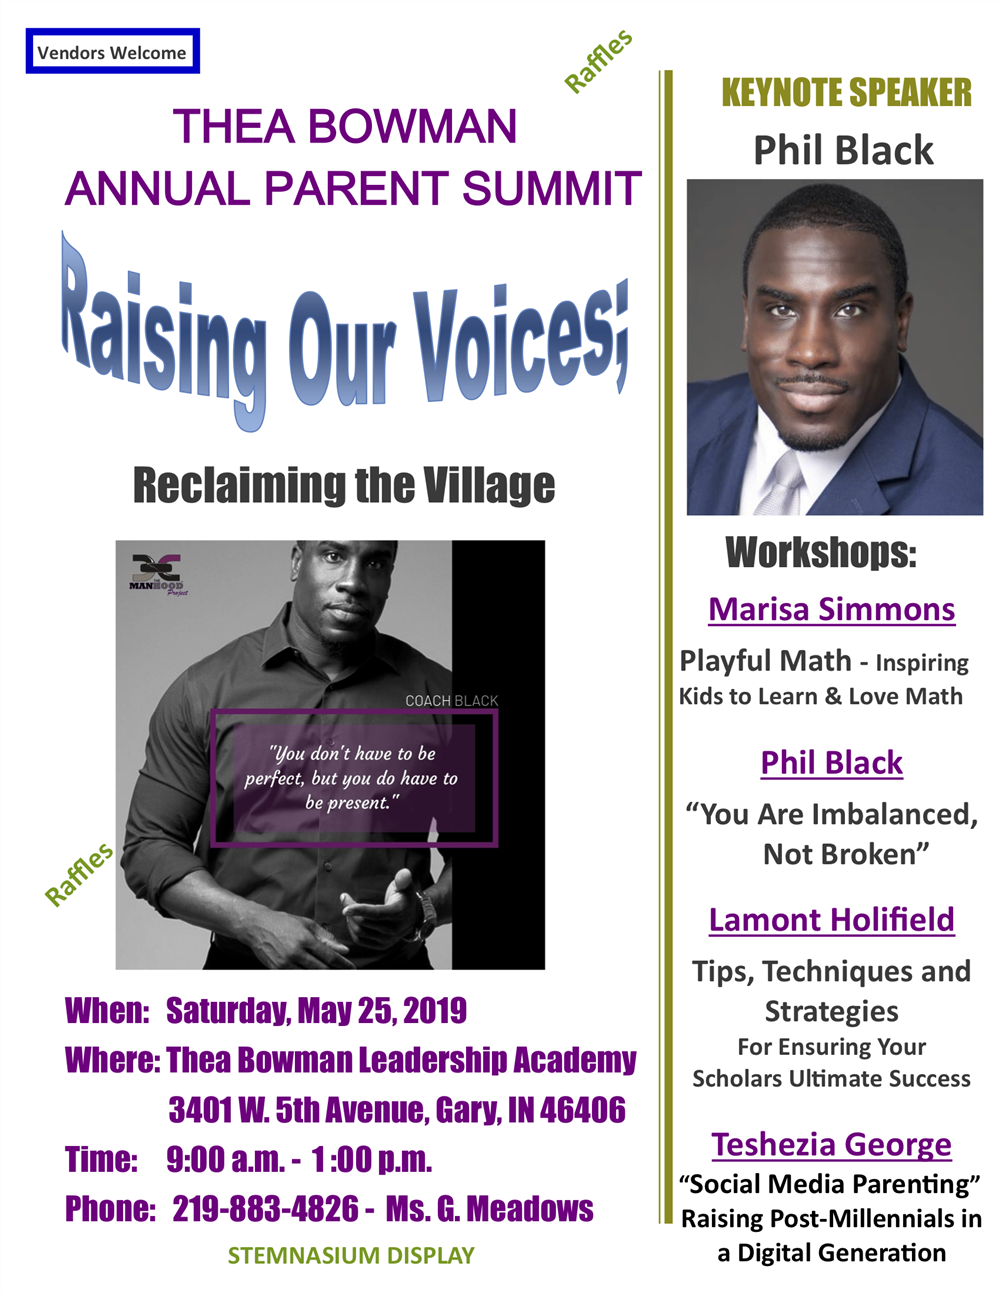 Join us for Thea Bowman Leadership Academies' Annual Summit Saturday, May 25th